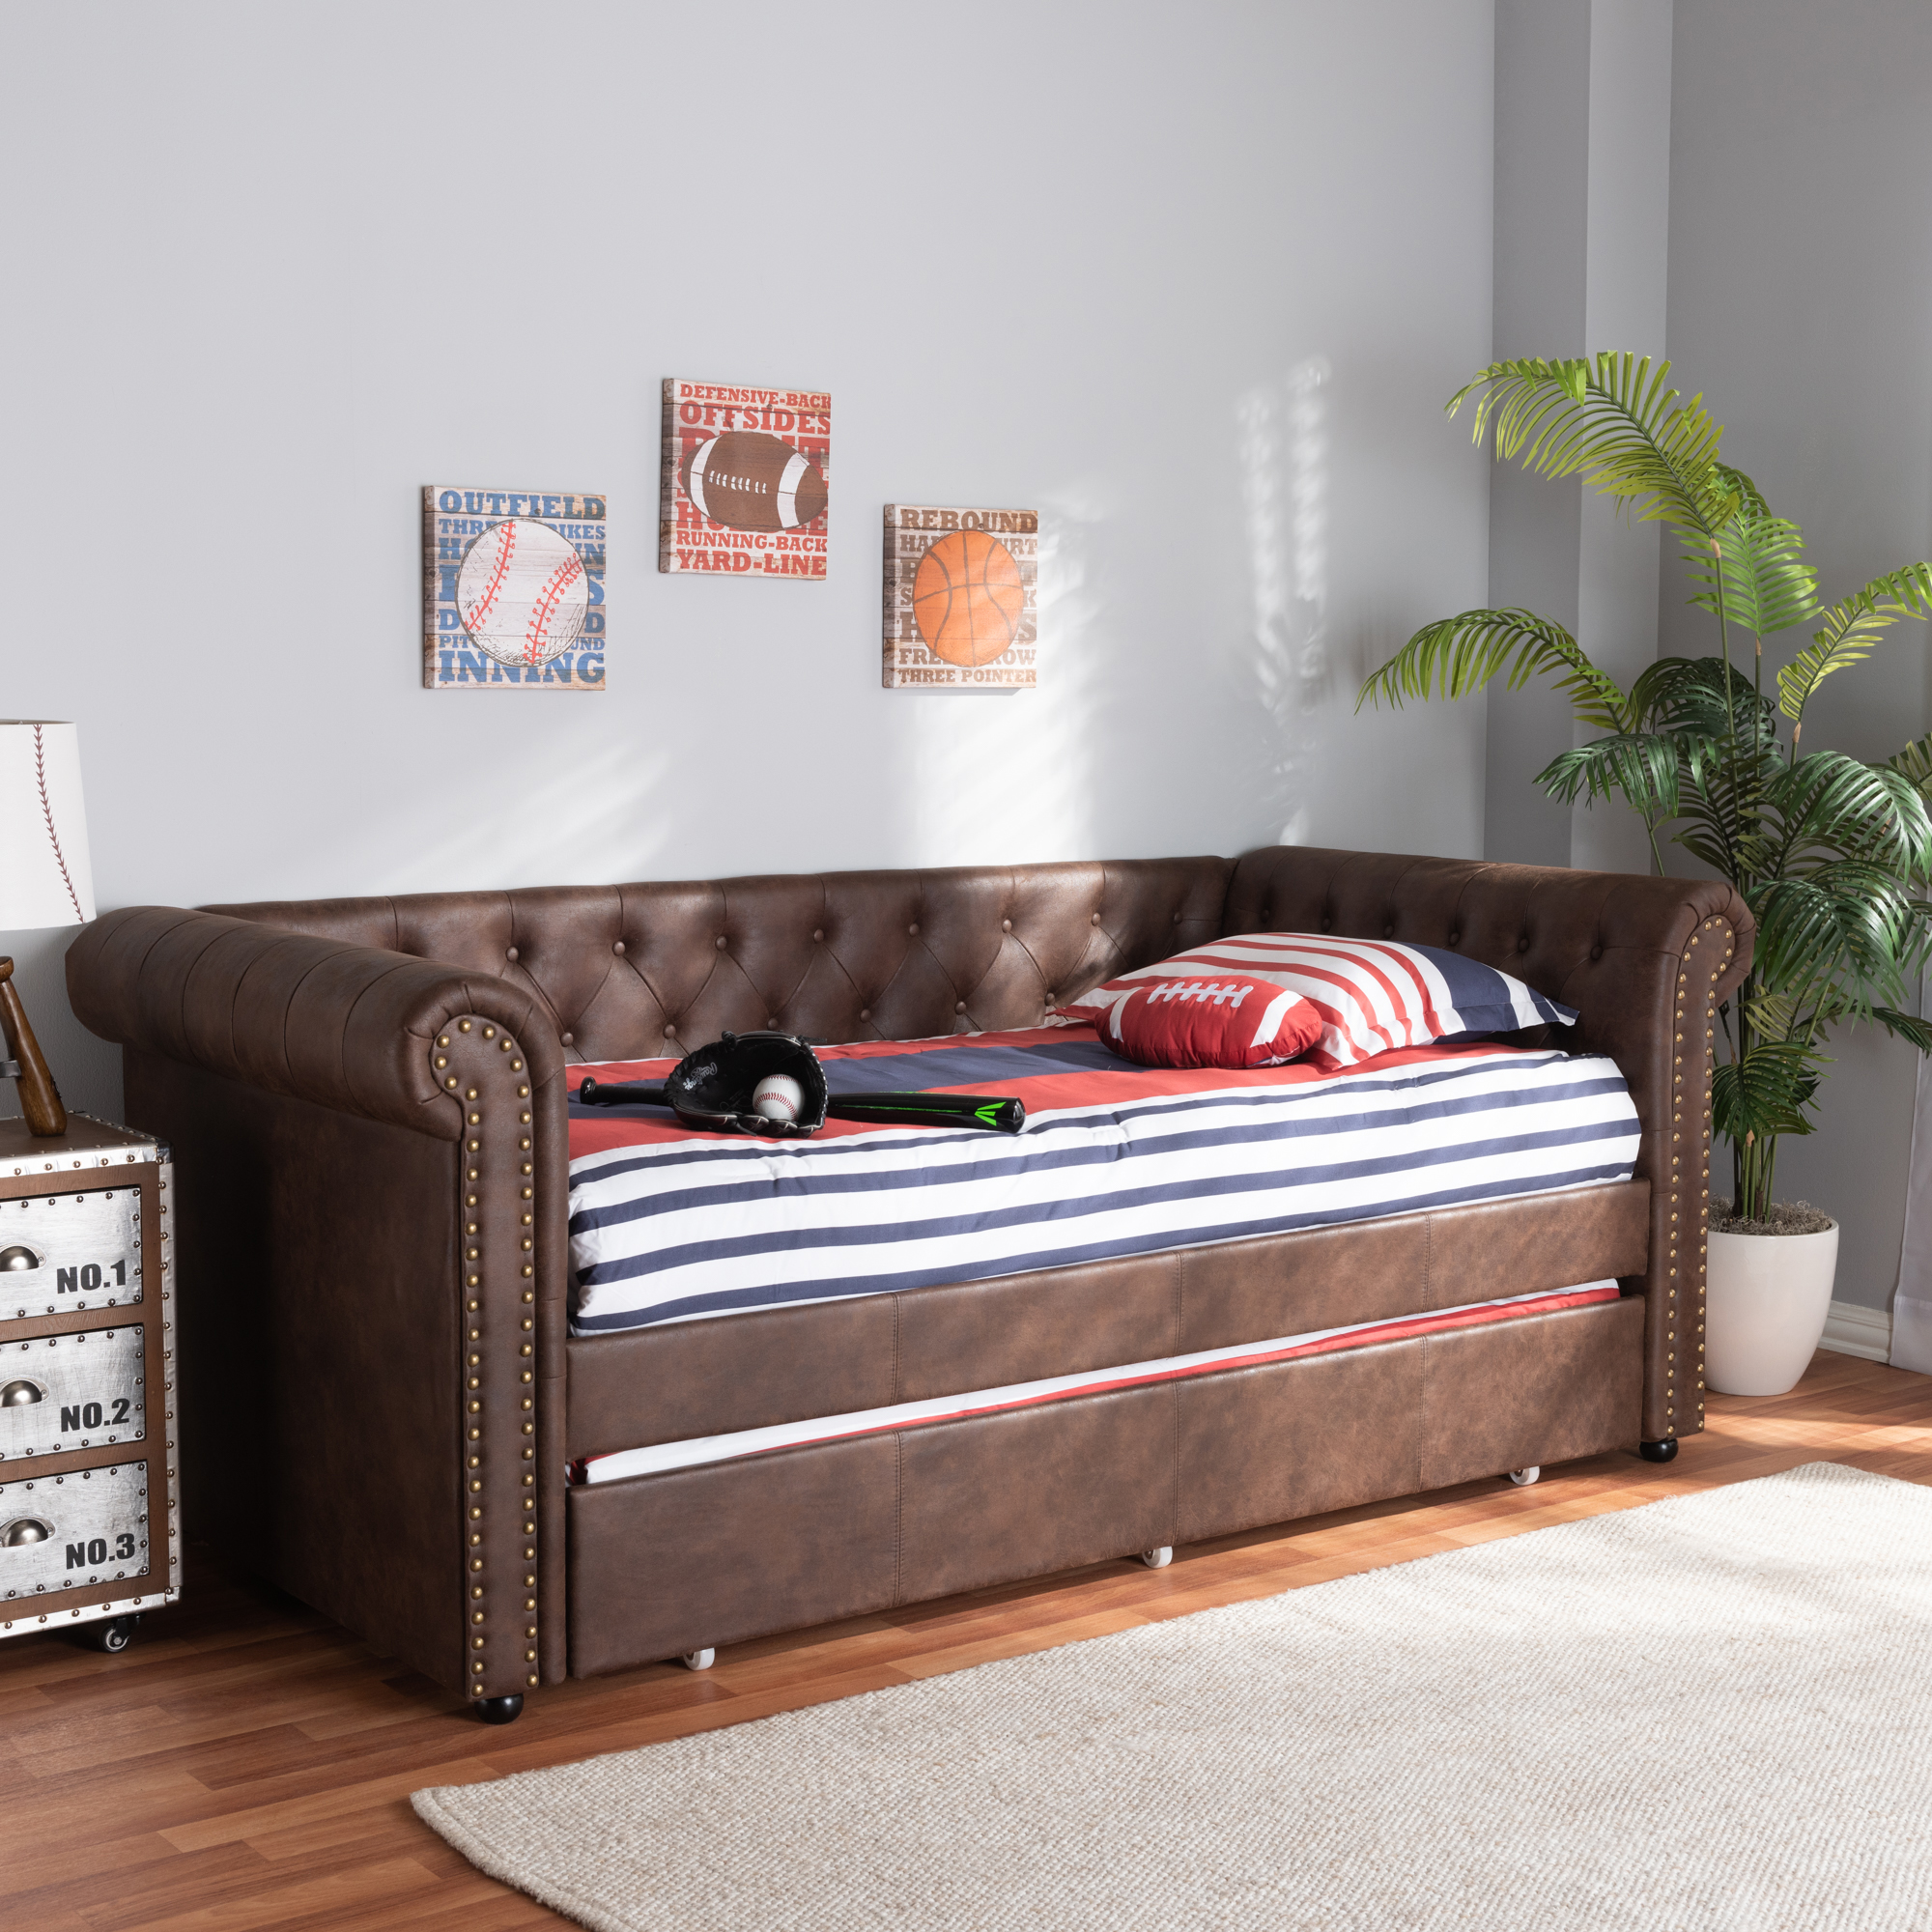 Picture of: Daybed With Trundle Roll Twin Size Upholstered Bed Brown Faux Leather For Sale Online Ebay